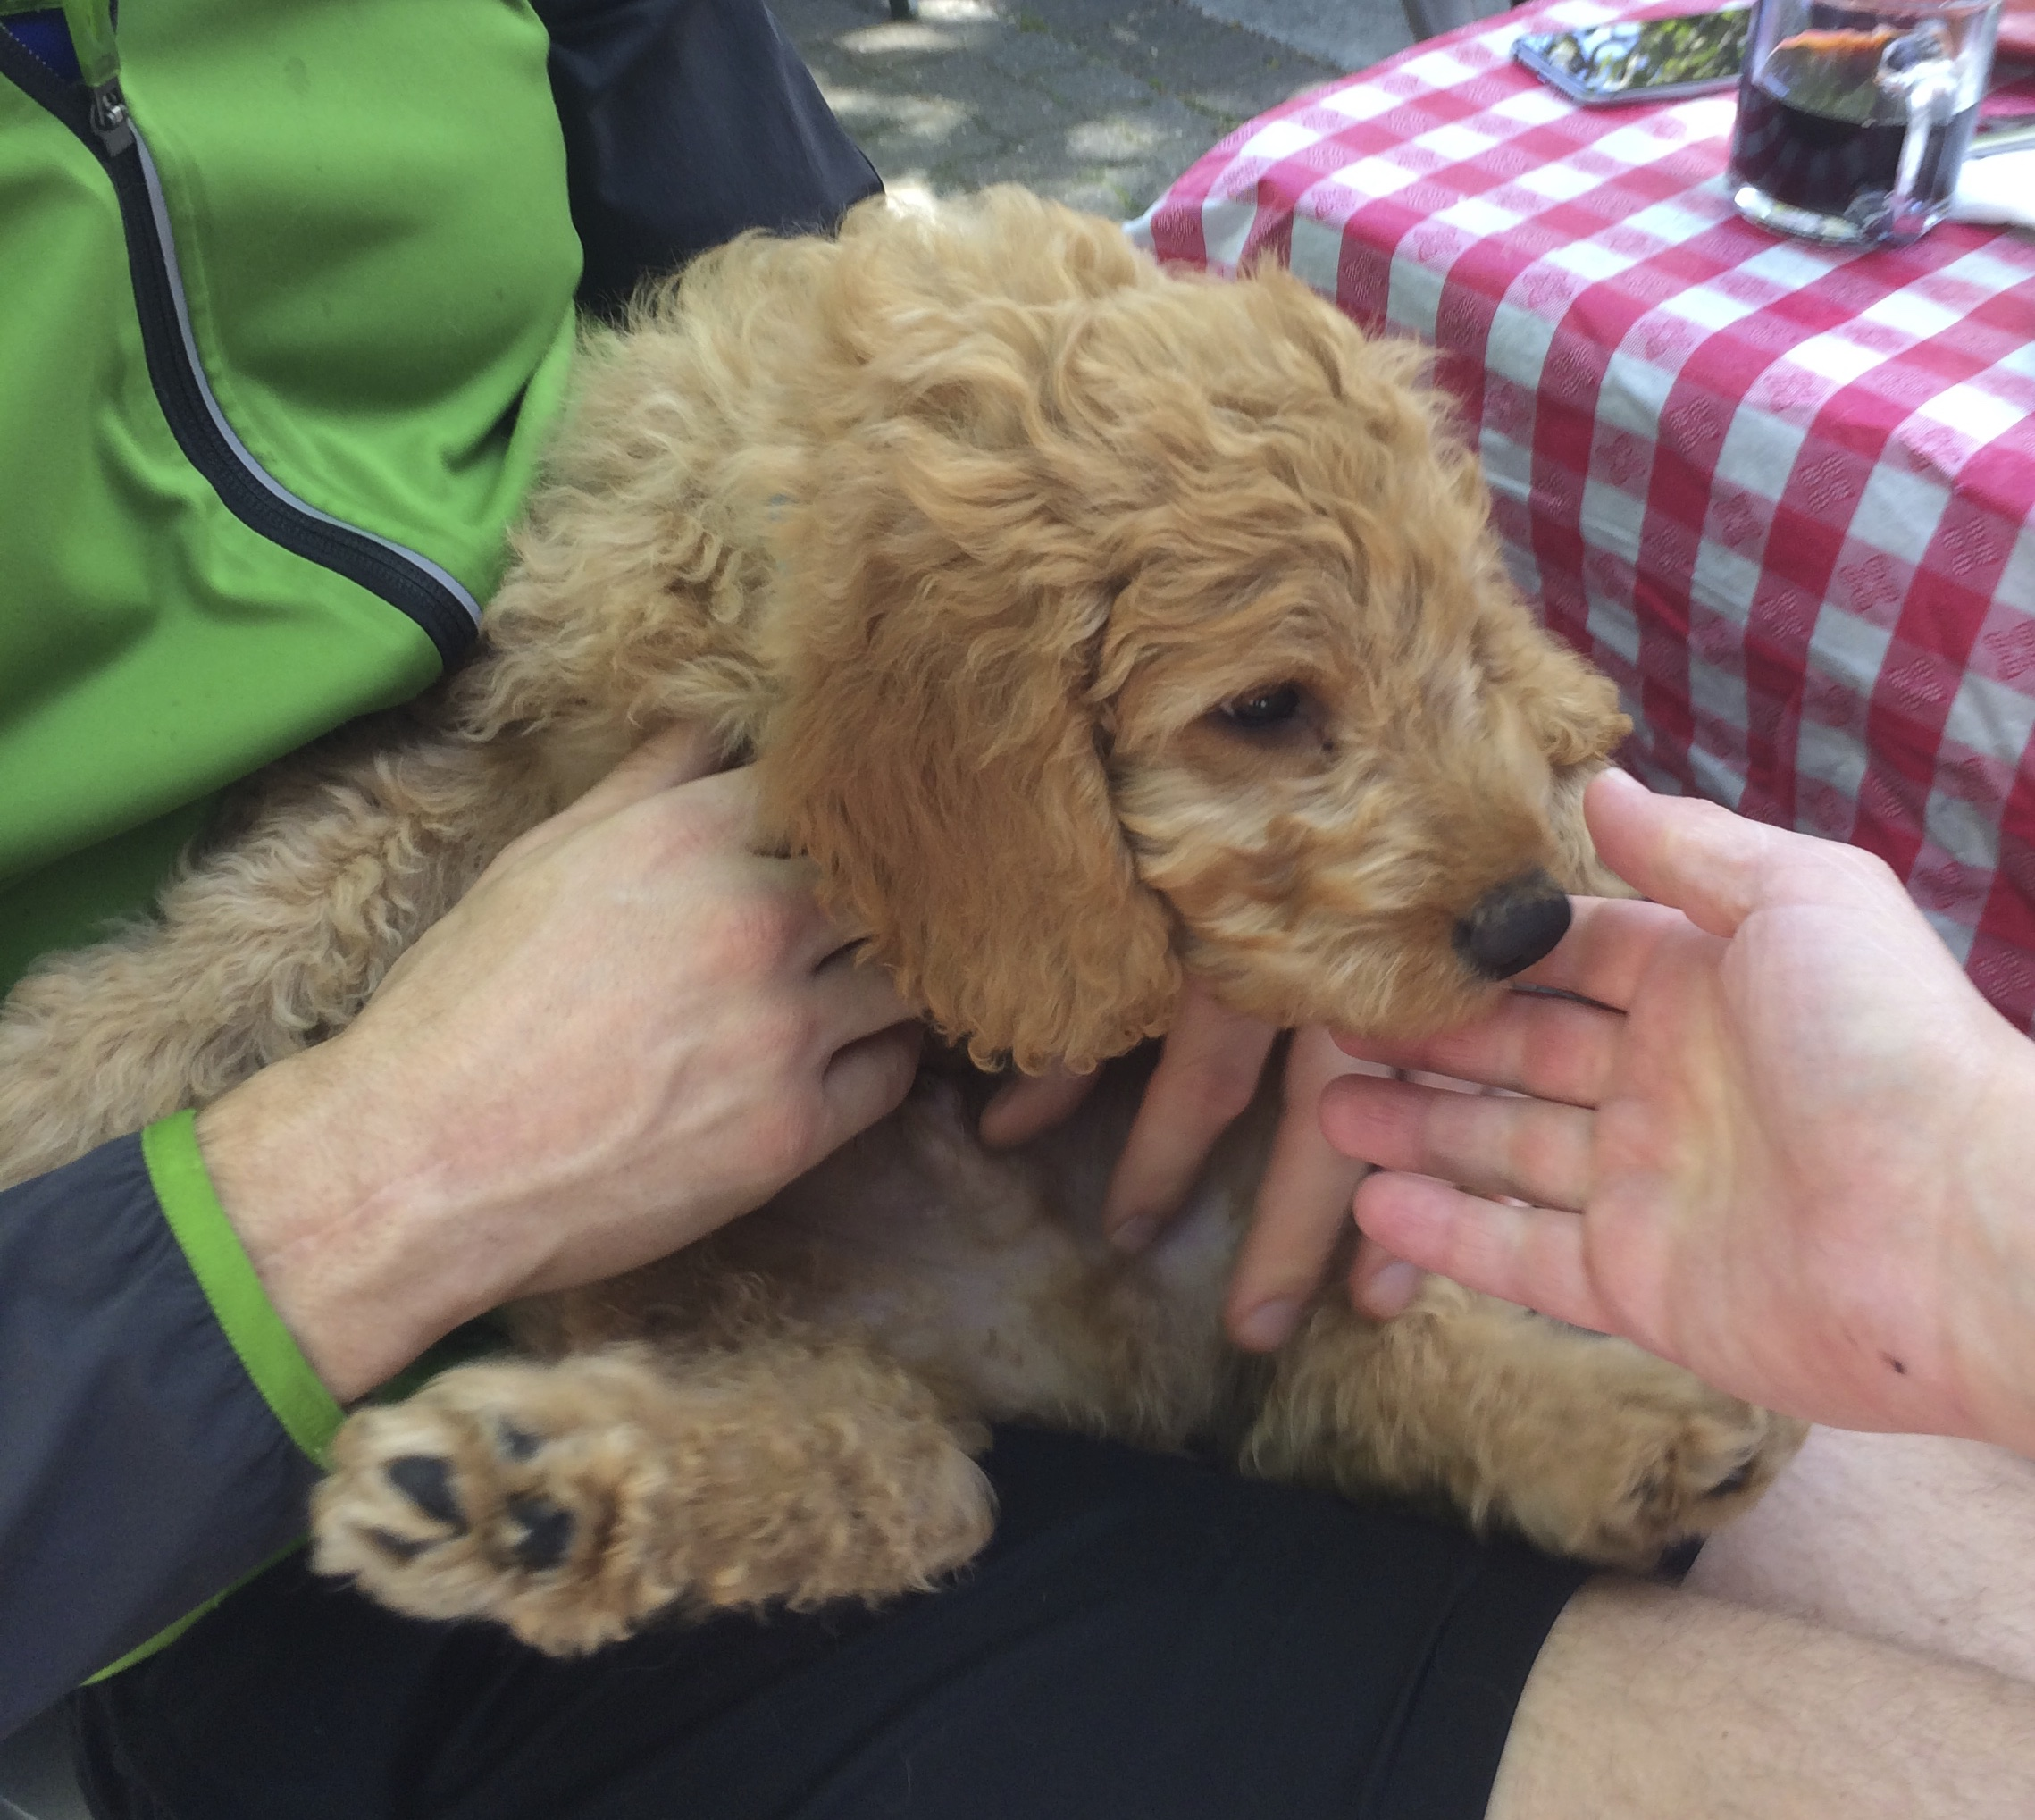 11-Week-Old Yellow Labradoodle Puppy Sprawled In Man's Lap